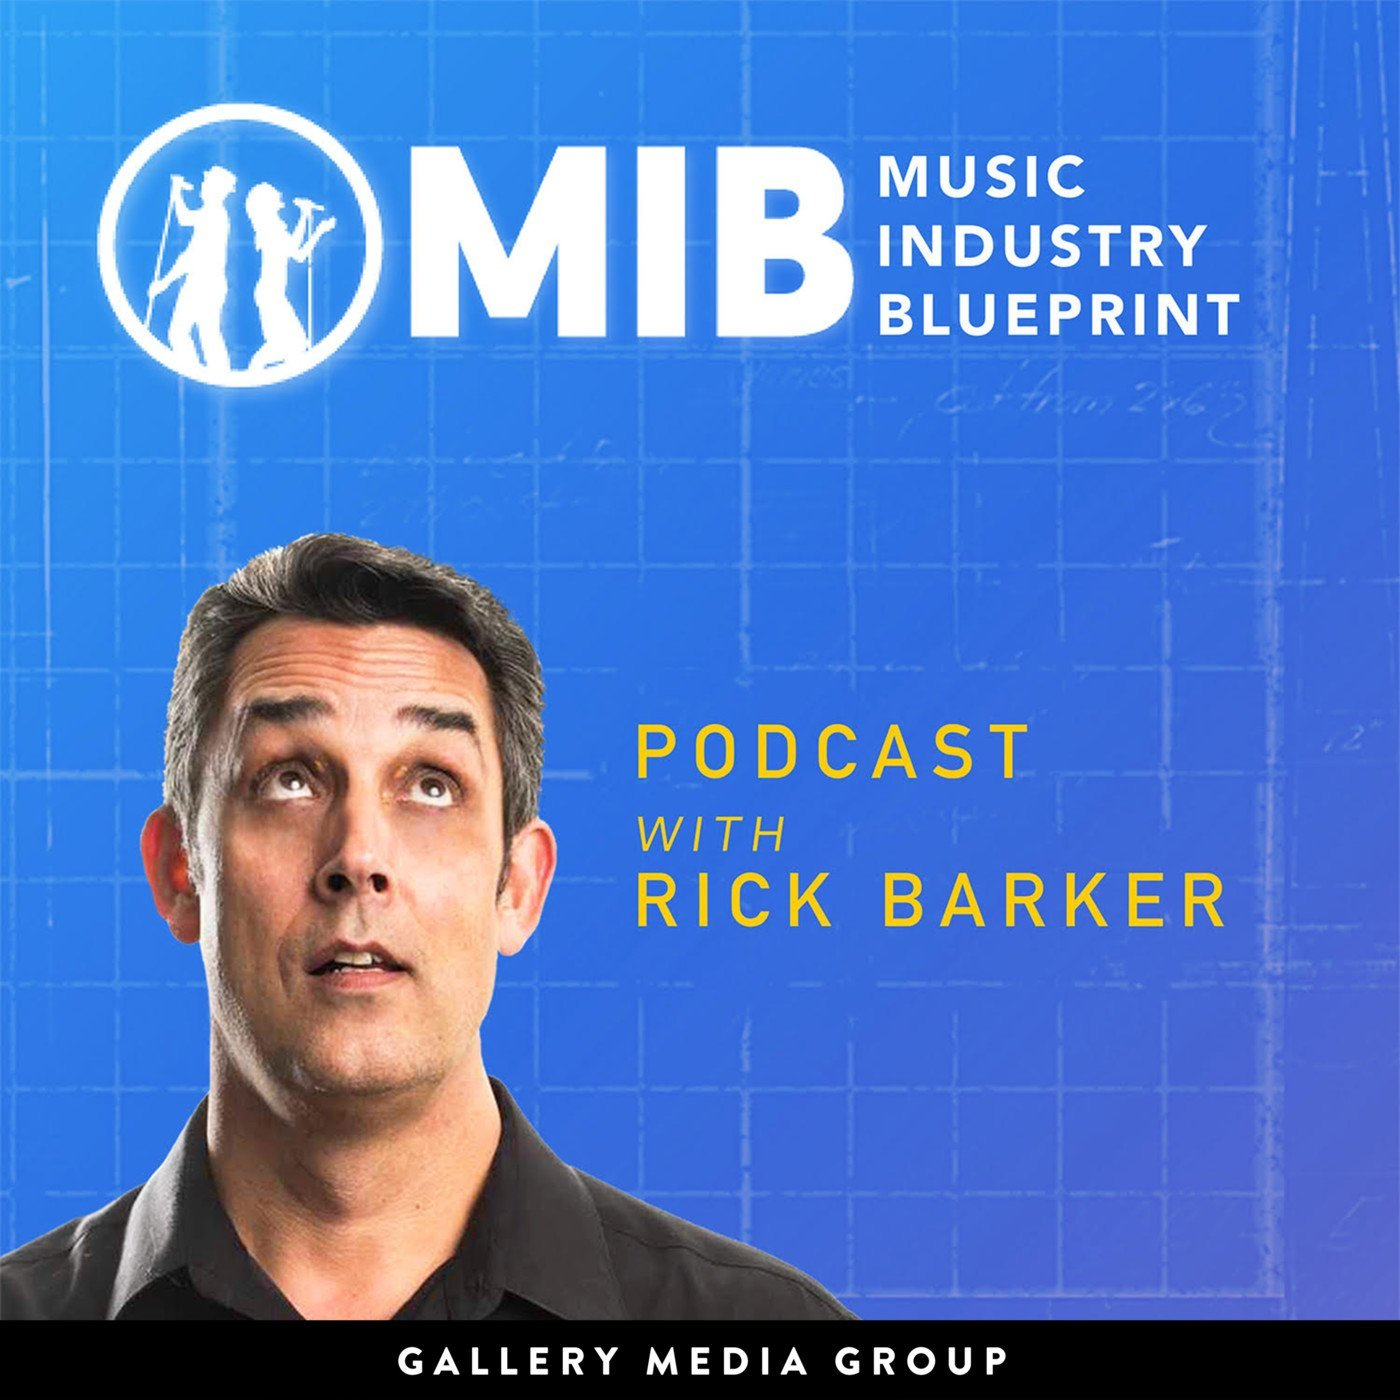 Episode 137: Musician's as Entrepreneur's is it possible? Guest is Kato On The Track